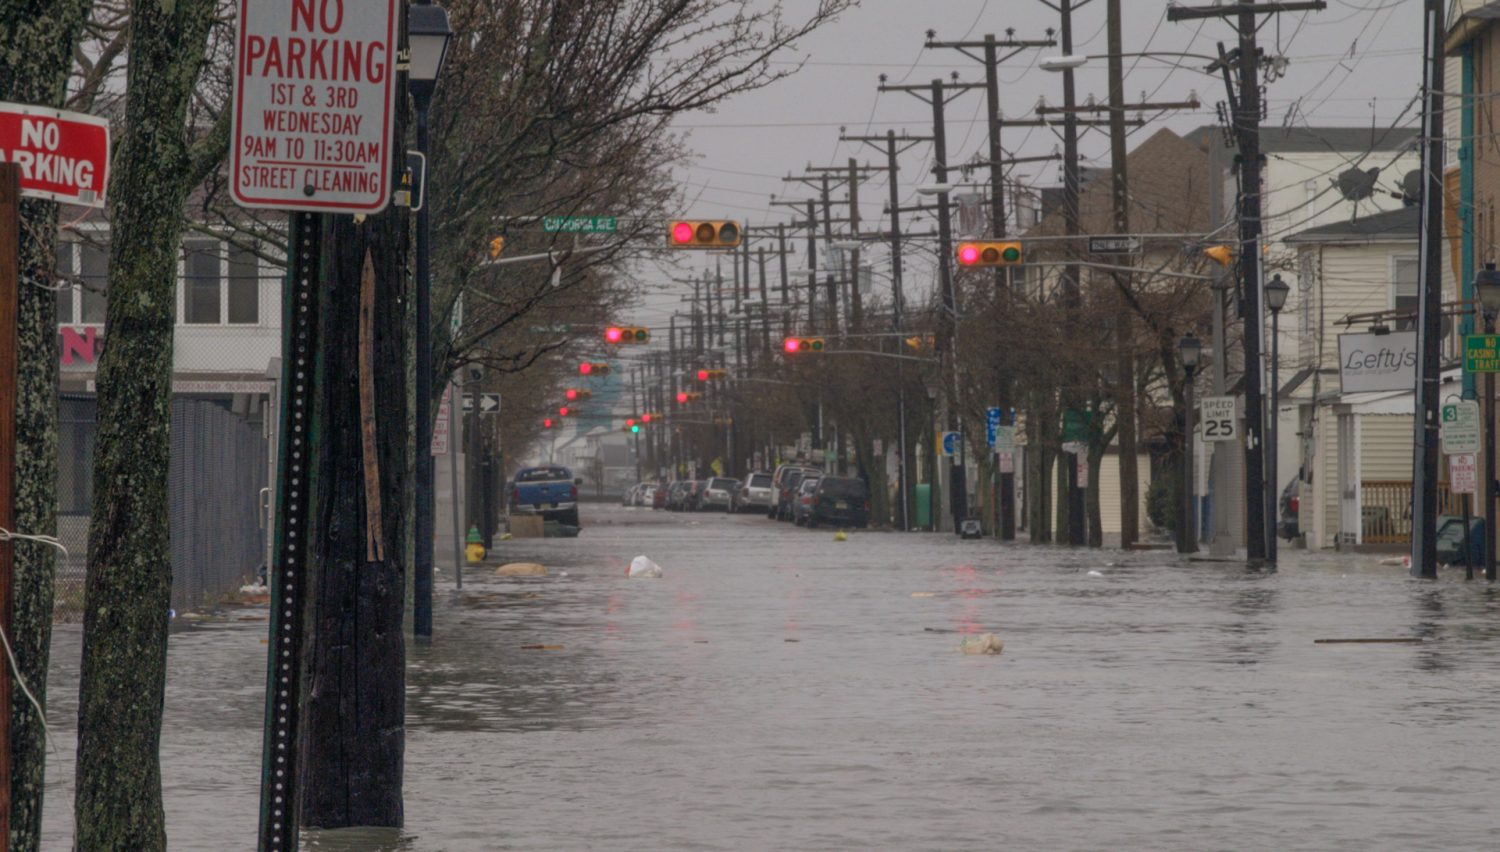 Flooding in Fairmount Avenue near Arizona Avenue at high tide during a storm. Photo by Ted Blanco/Climate Central